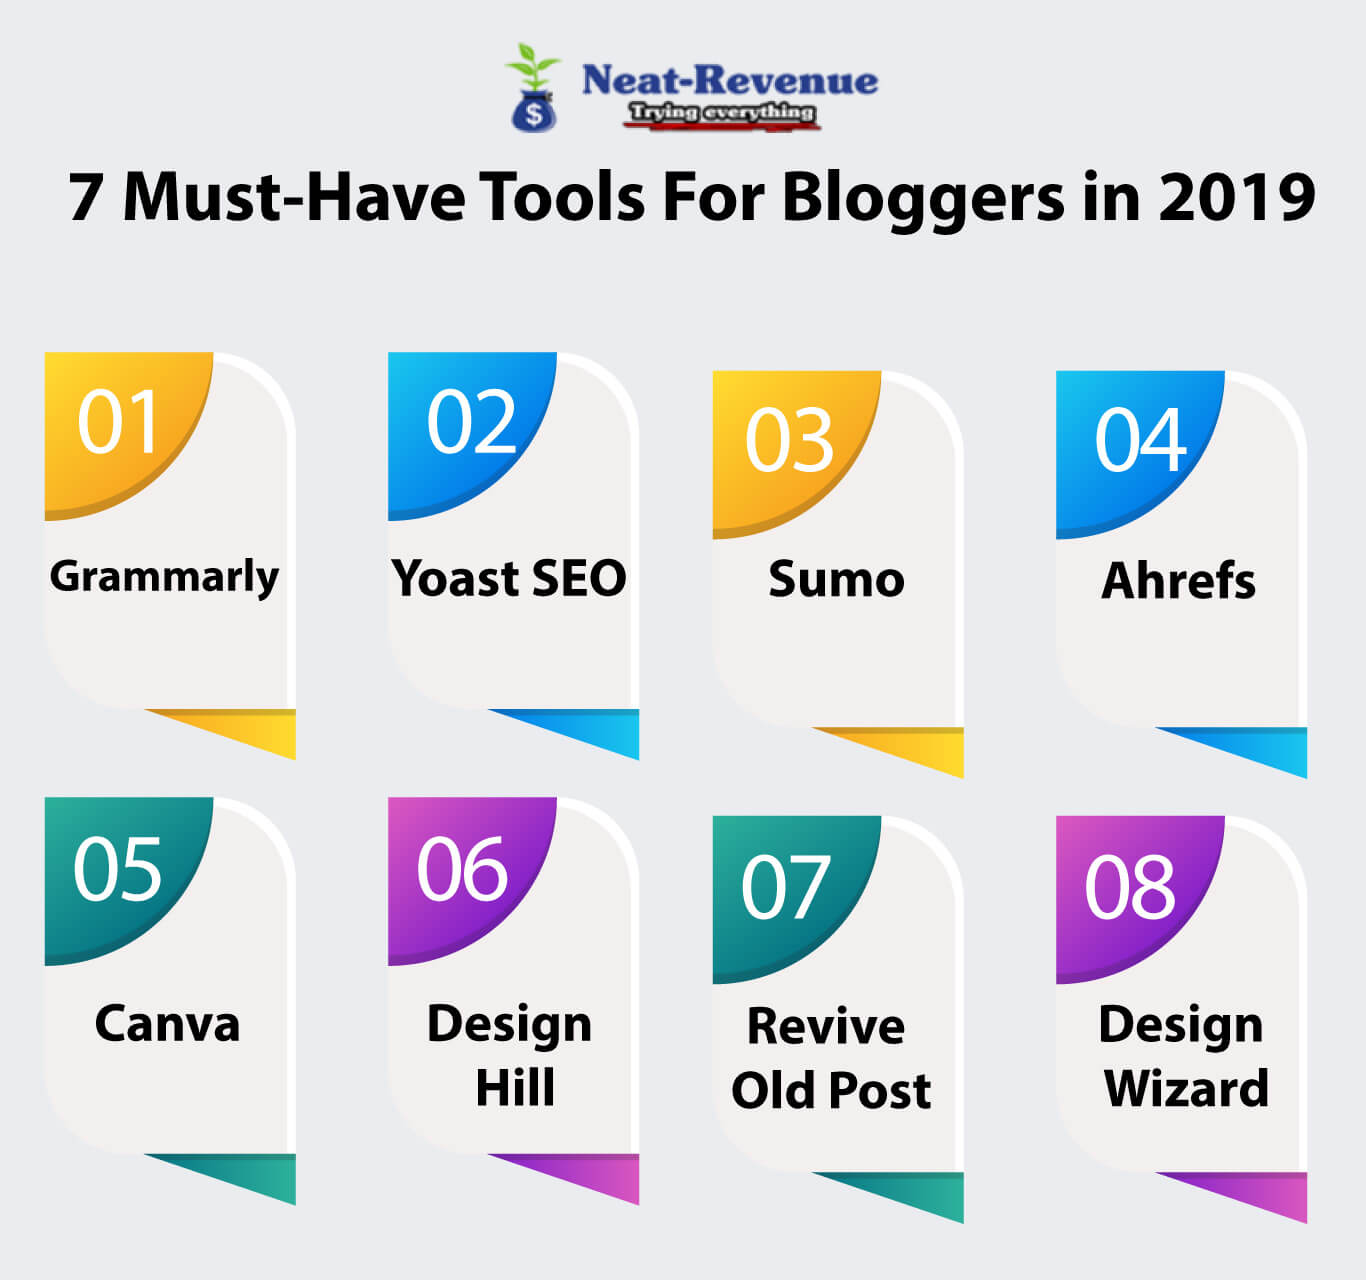 7 Must-Have Tools For Bloggers in 2019 - Infographics